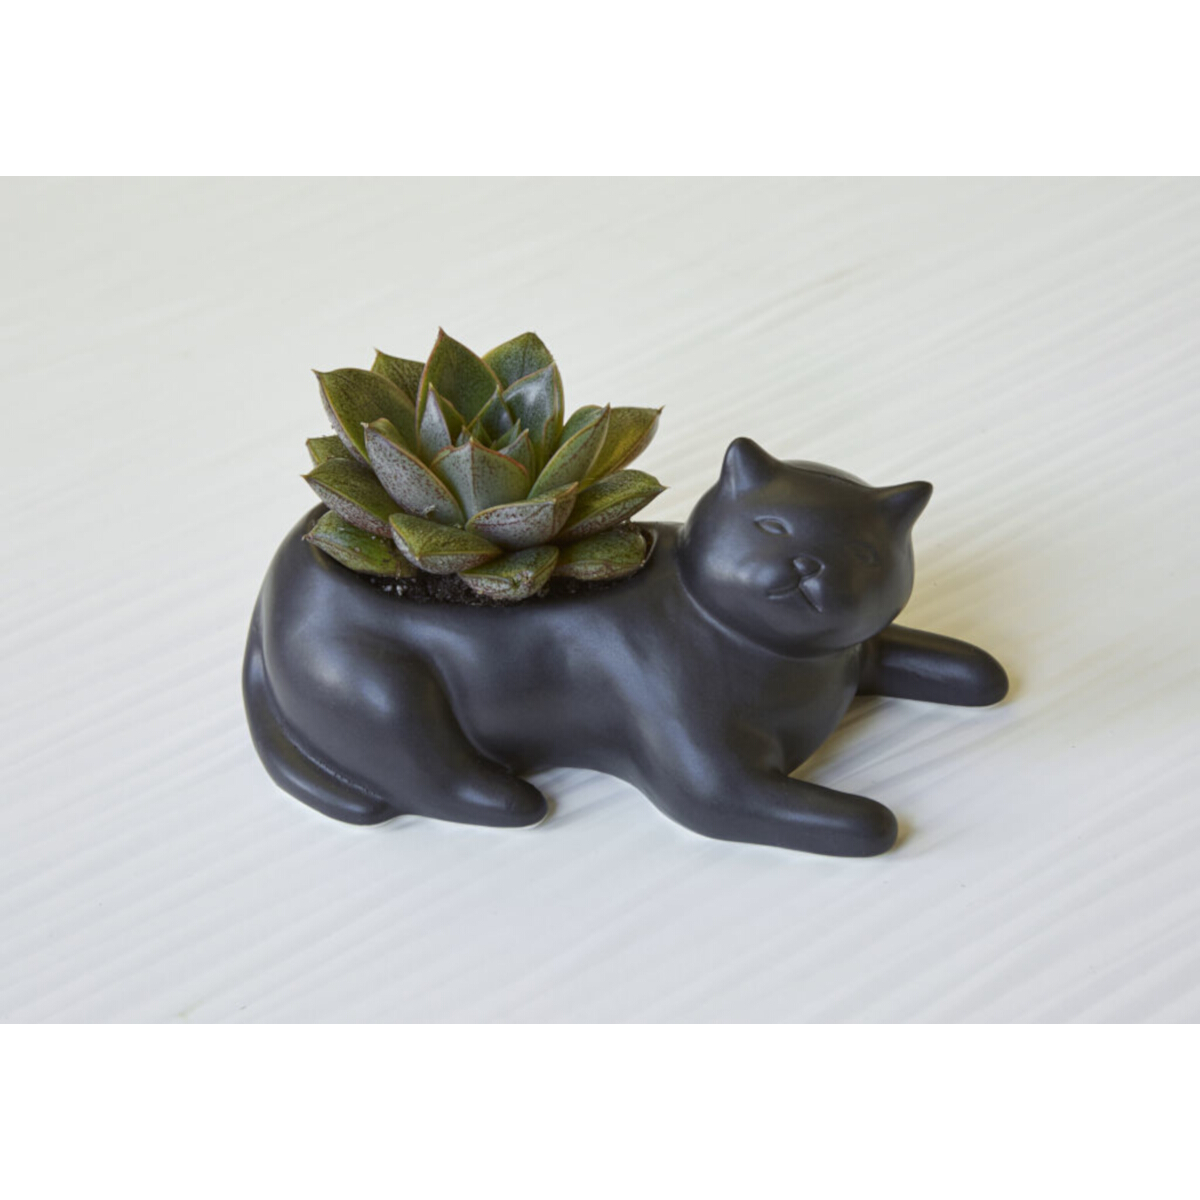 image Cosmo-The-Black-Cat-Planter-Main-Image